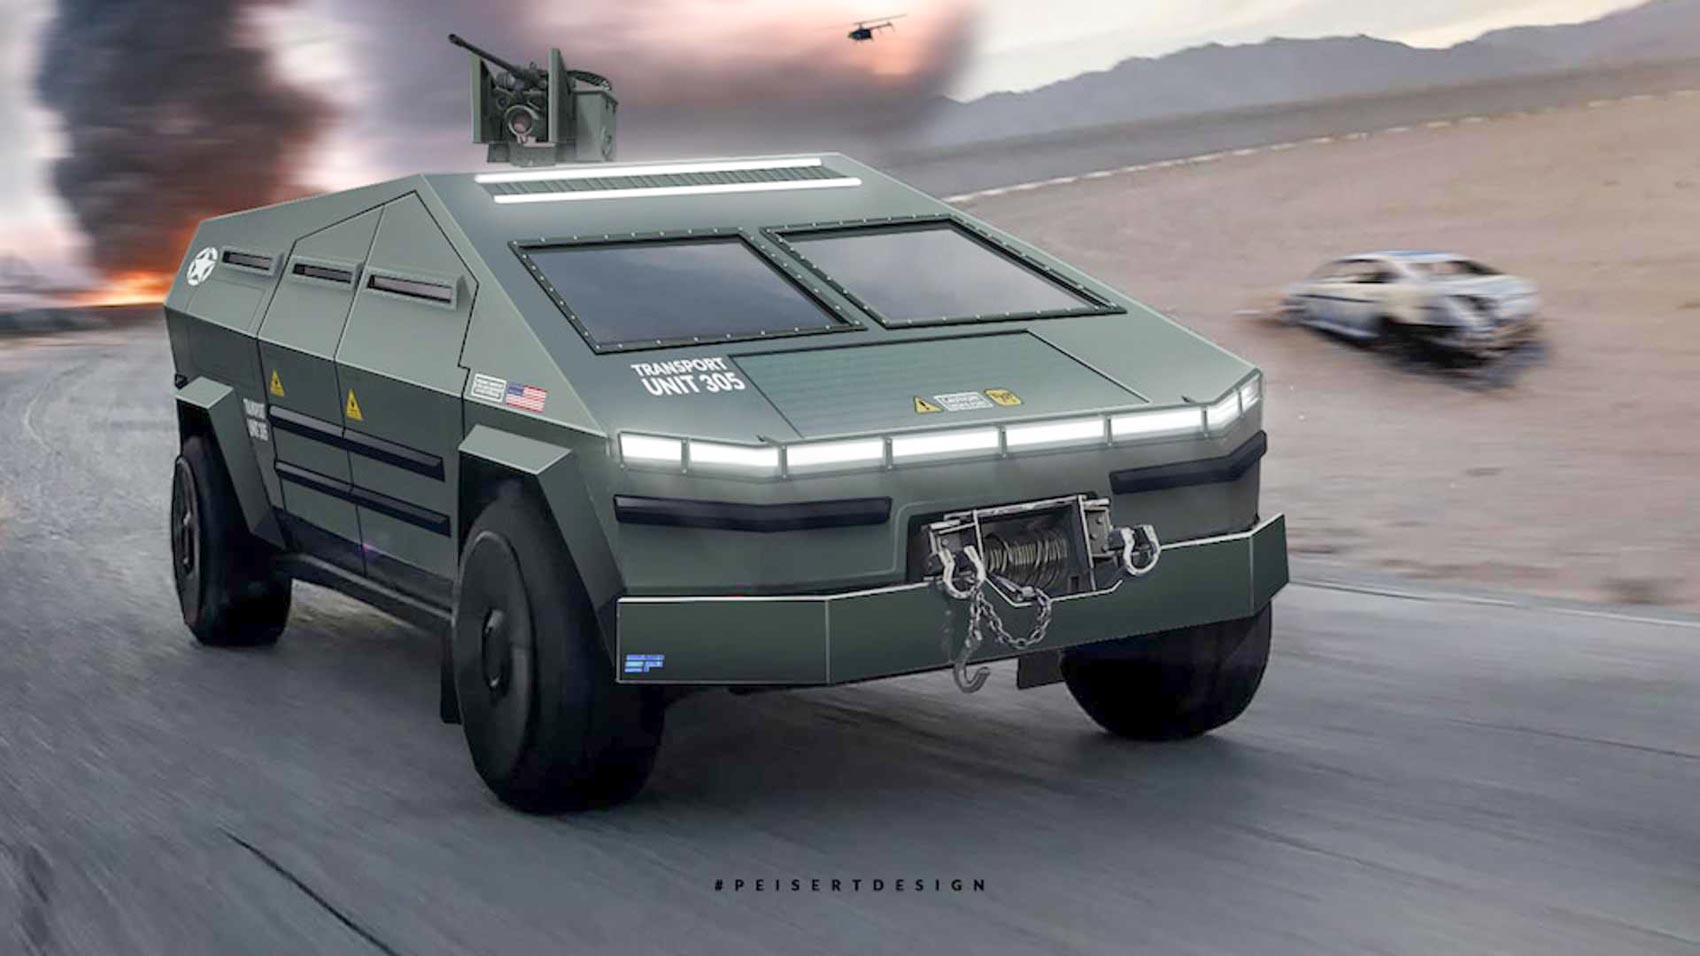 These Combat Ready Tesla Cybertruck Renderings Will Leave You In Awe